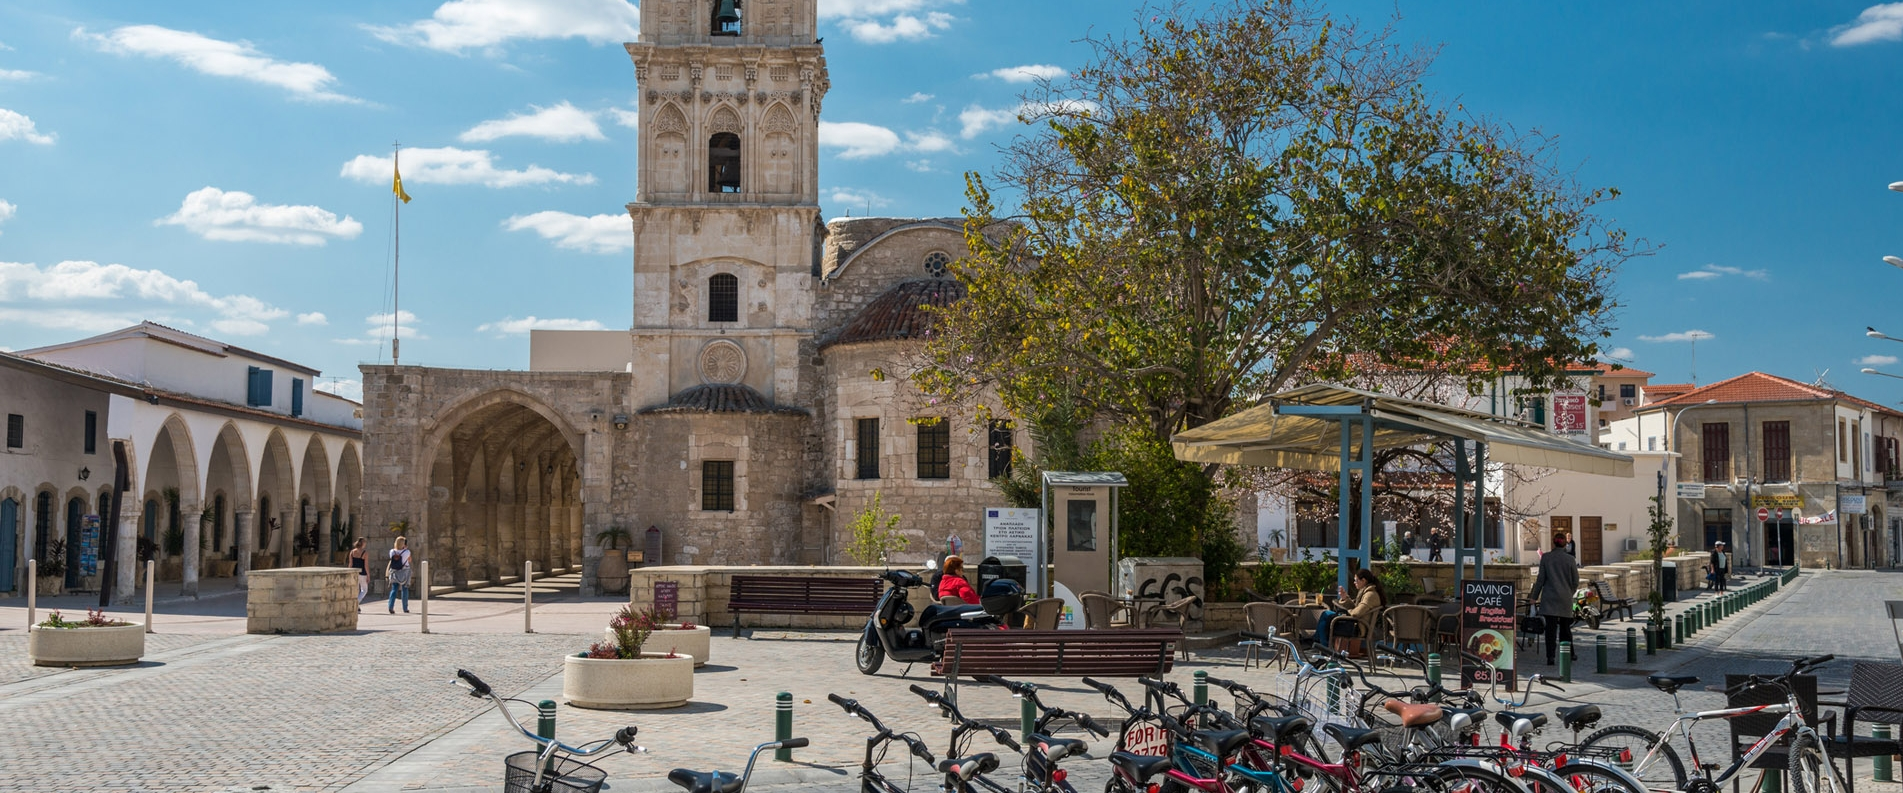 Things to do in Larnaca: museums, attractions and restaurants